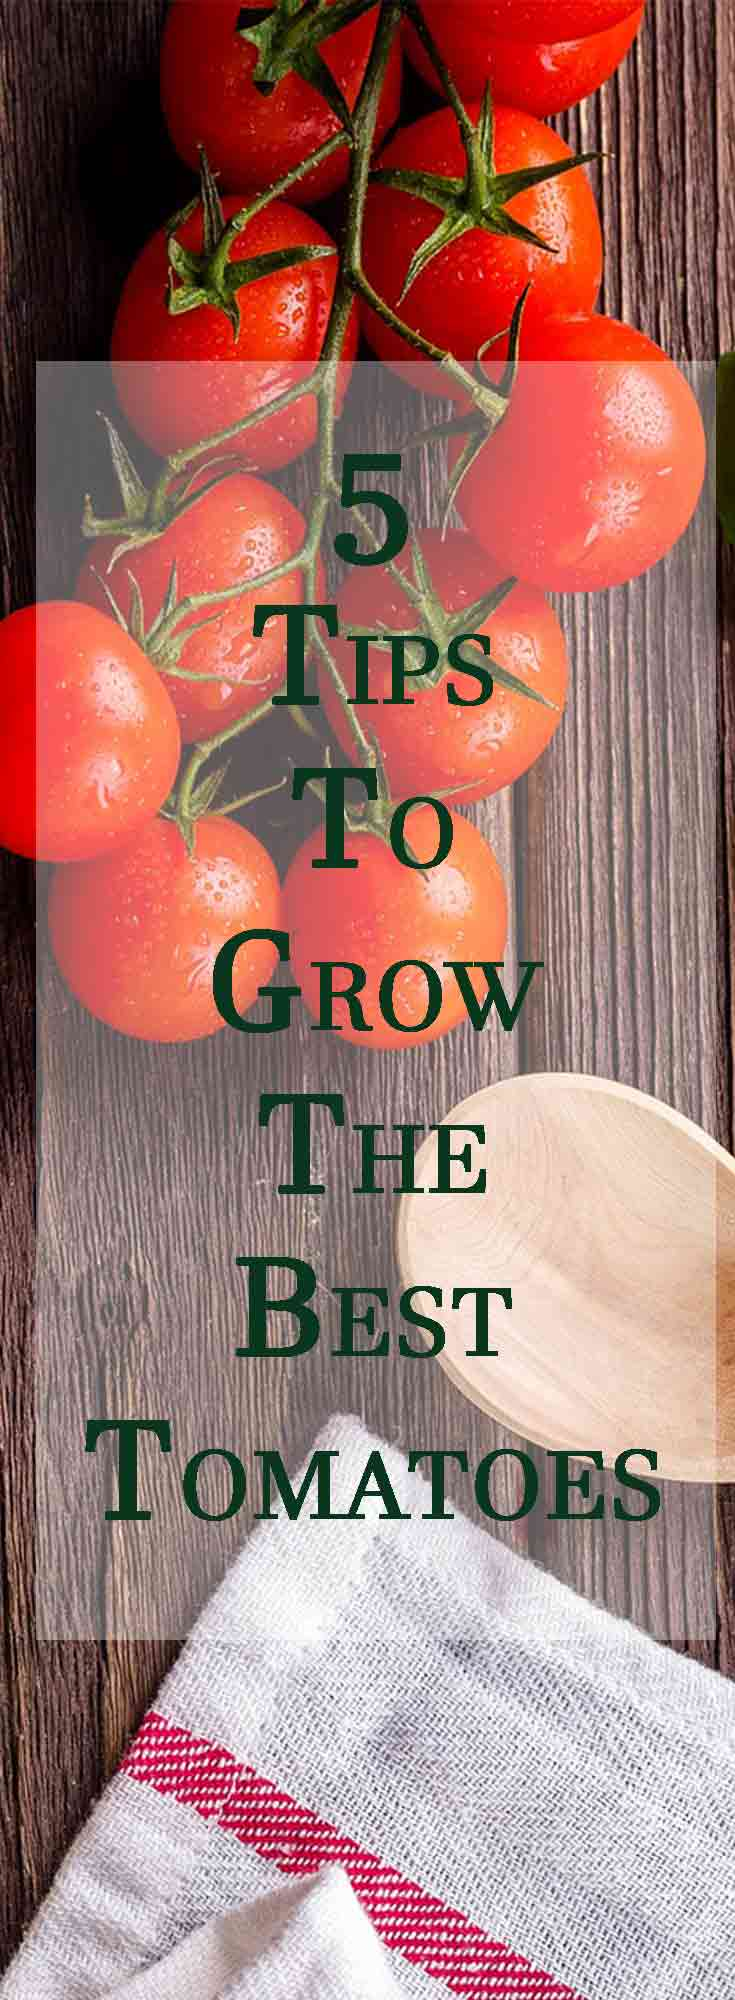 Tomatoes at the grocery store are pretty pitiful compared to the pride of your garden, so it's definitely worth it to get out there and do some planting. But, if you're not careful, things like pests, blossom rot or disease can ruin your harvest and make all your time, effort and money go to waste. Read on for 5 key tips that will help you give your tomato plants what they need, so you can maximize your harvest this year and grow a bumper crop of juicy, delicious tomatoes!